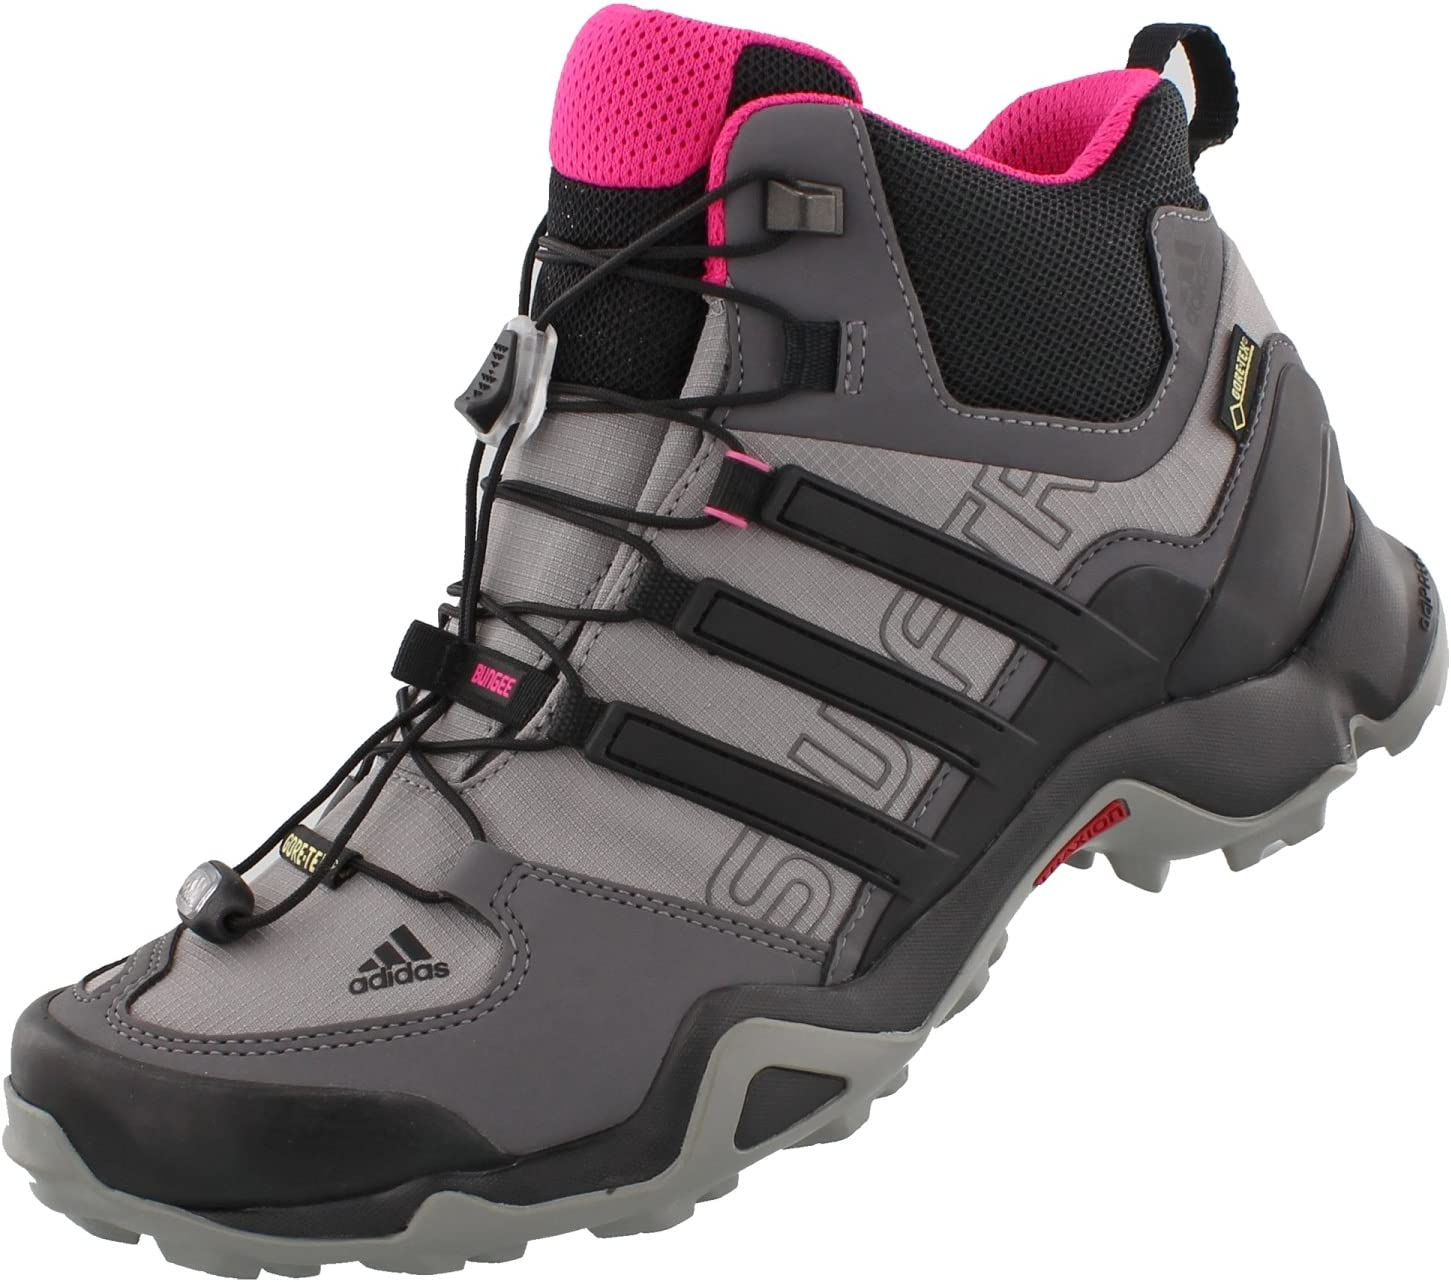 adidas Outdoor Terrex Swift R Mid GTX Hiking Boot Women's